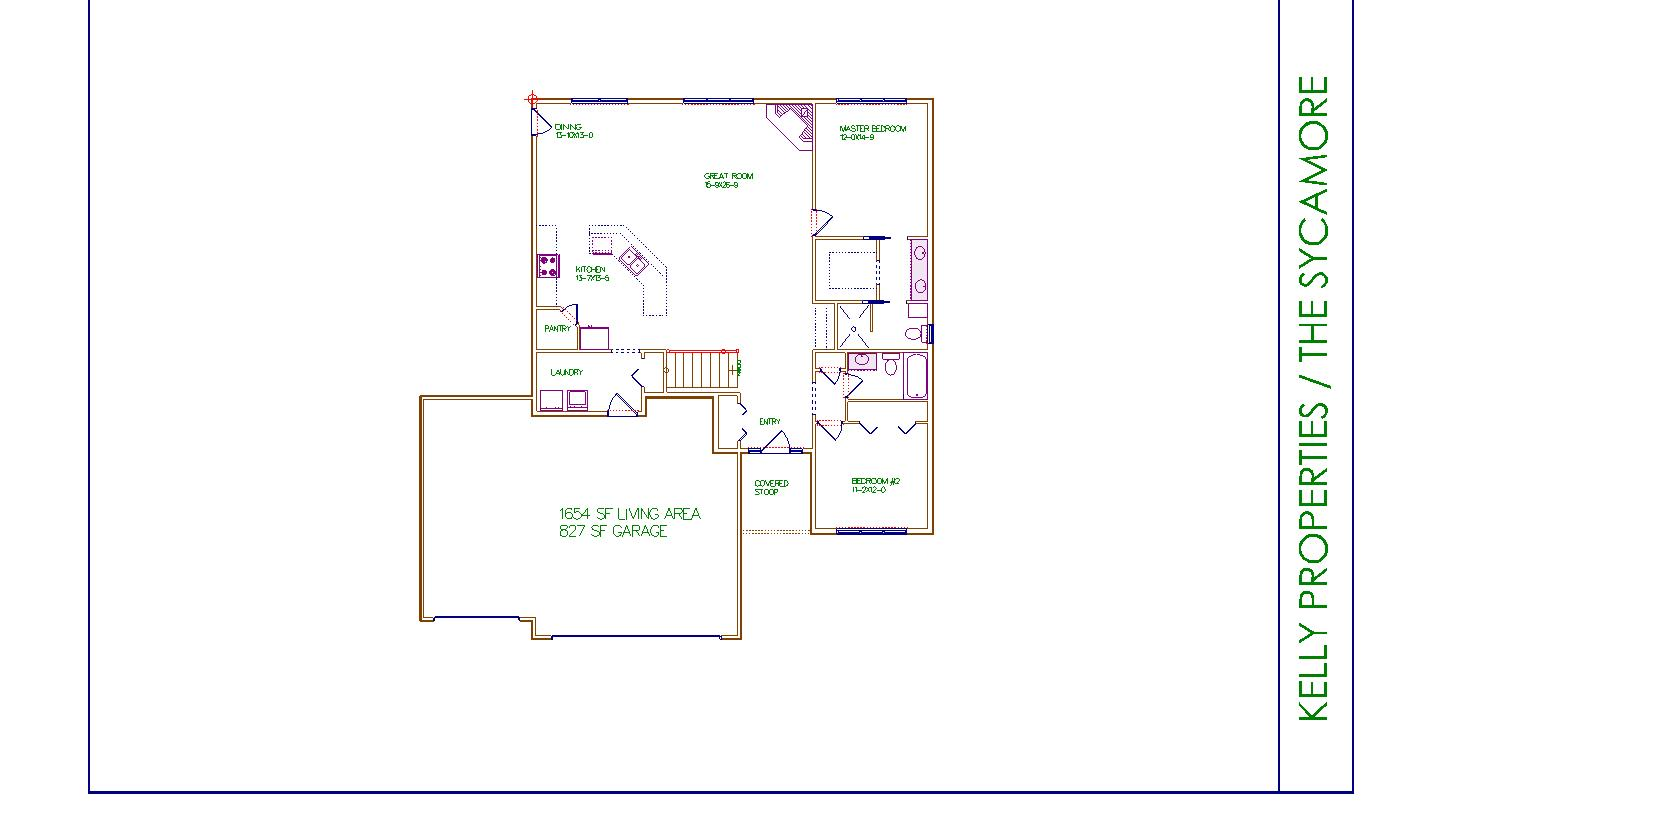 SYCAMORE MAIN LEVEL VIEW PLANS.jpg